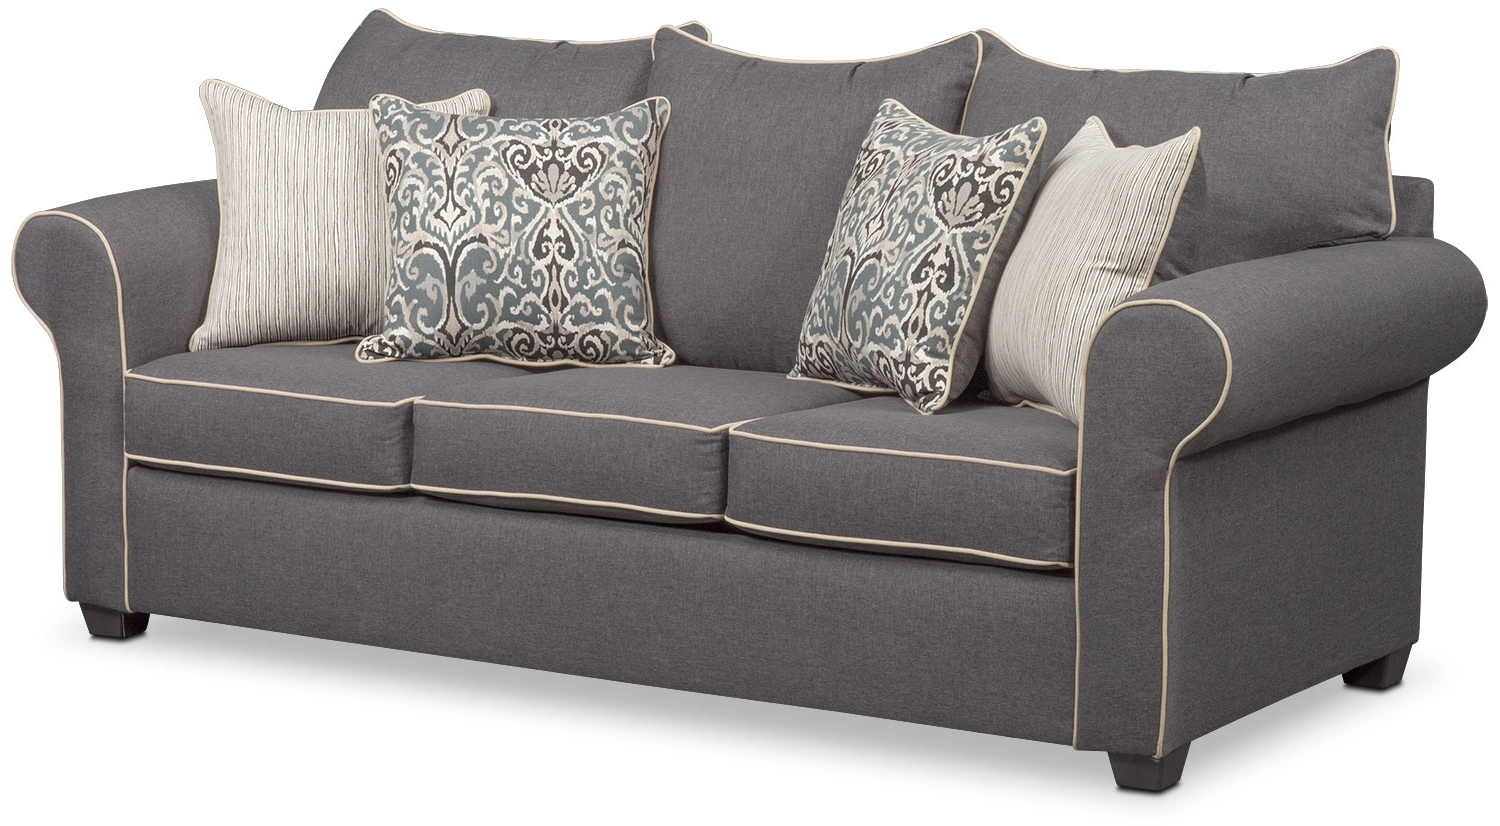 Newest Carla Sofa, Loveseat, And Accent Chair Set – Gray (View 6 of 15)